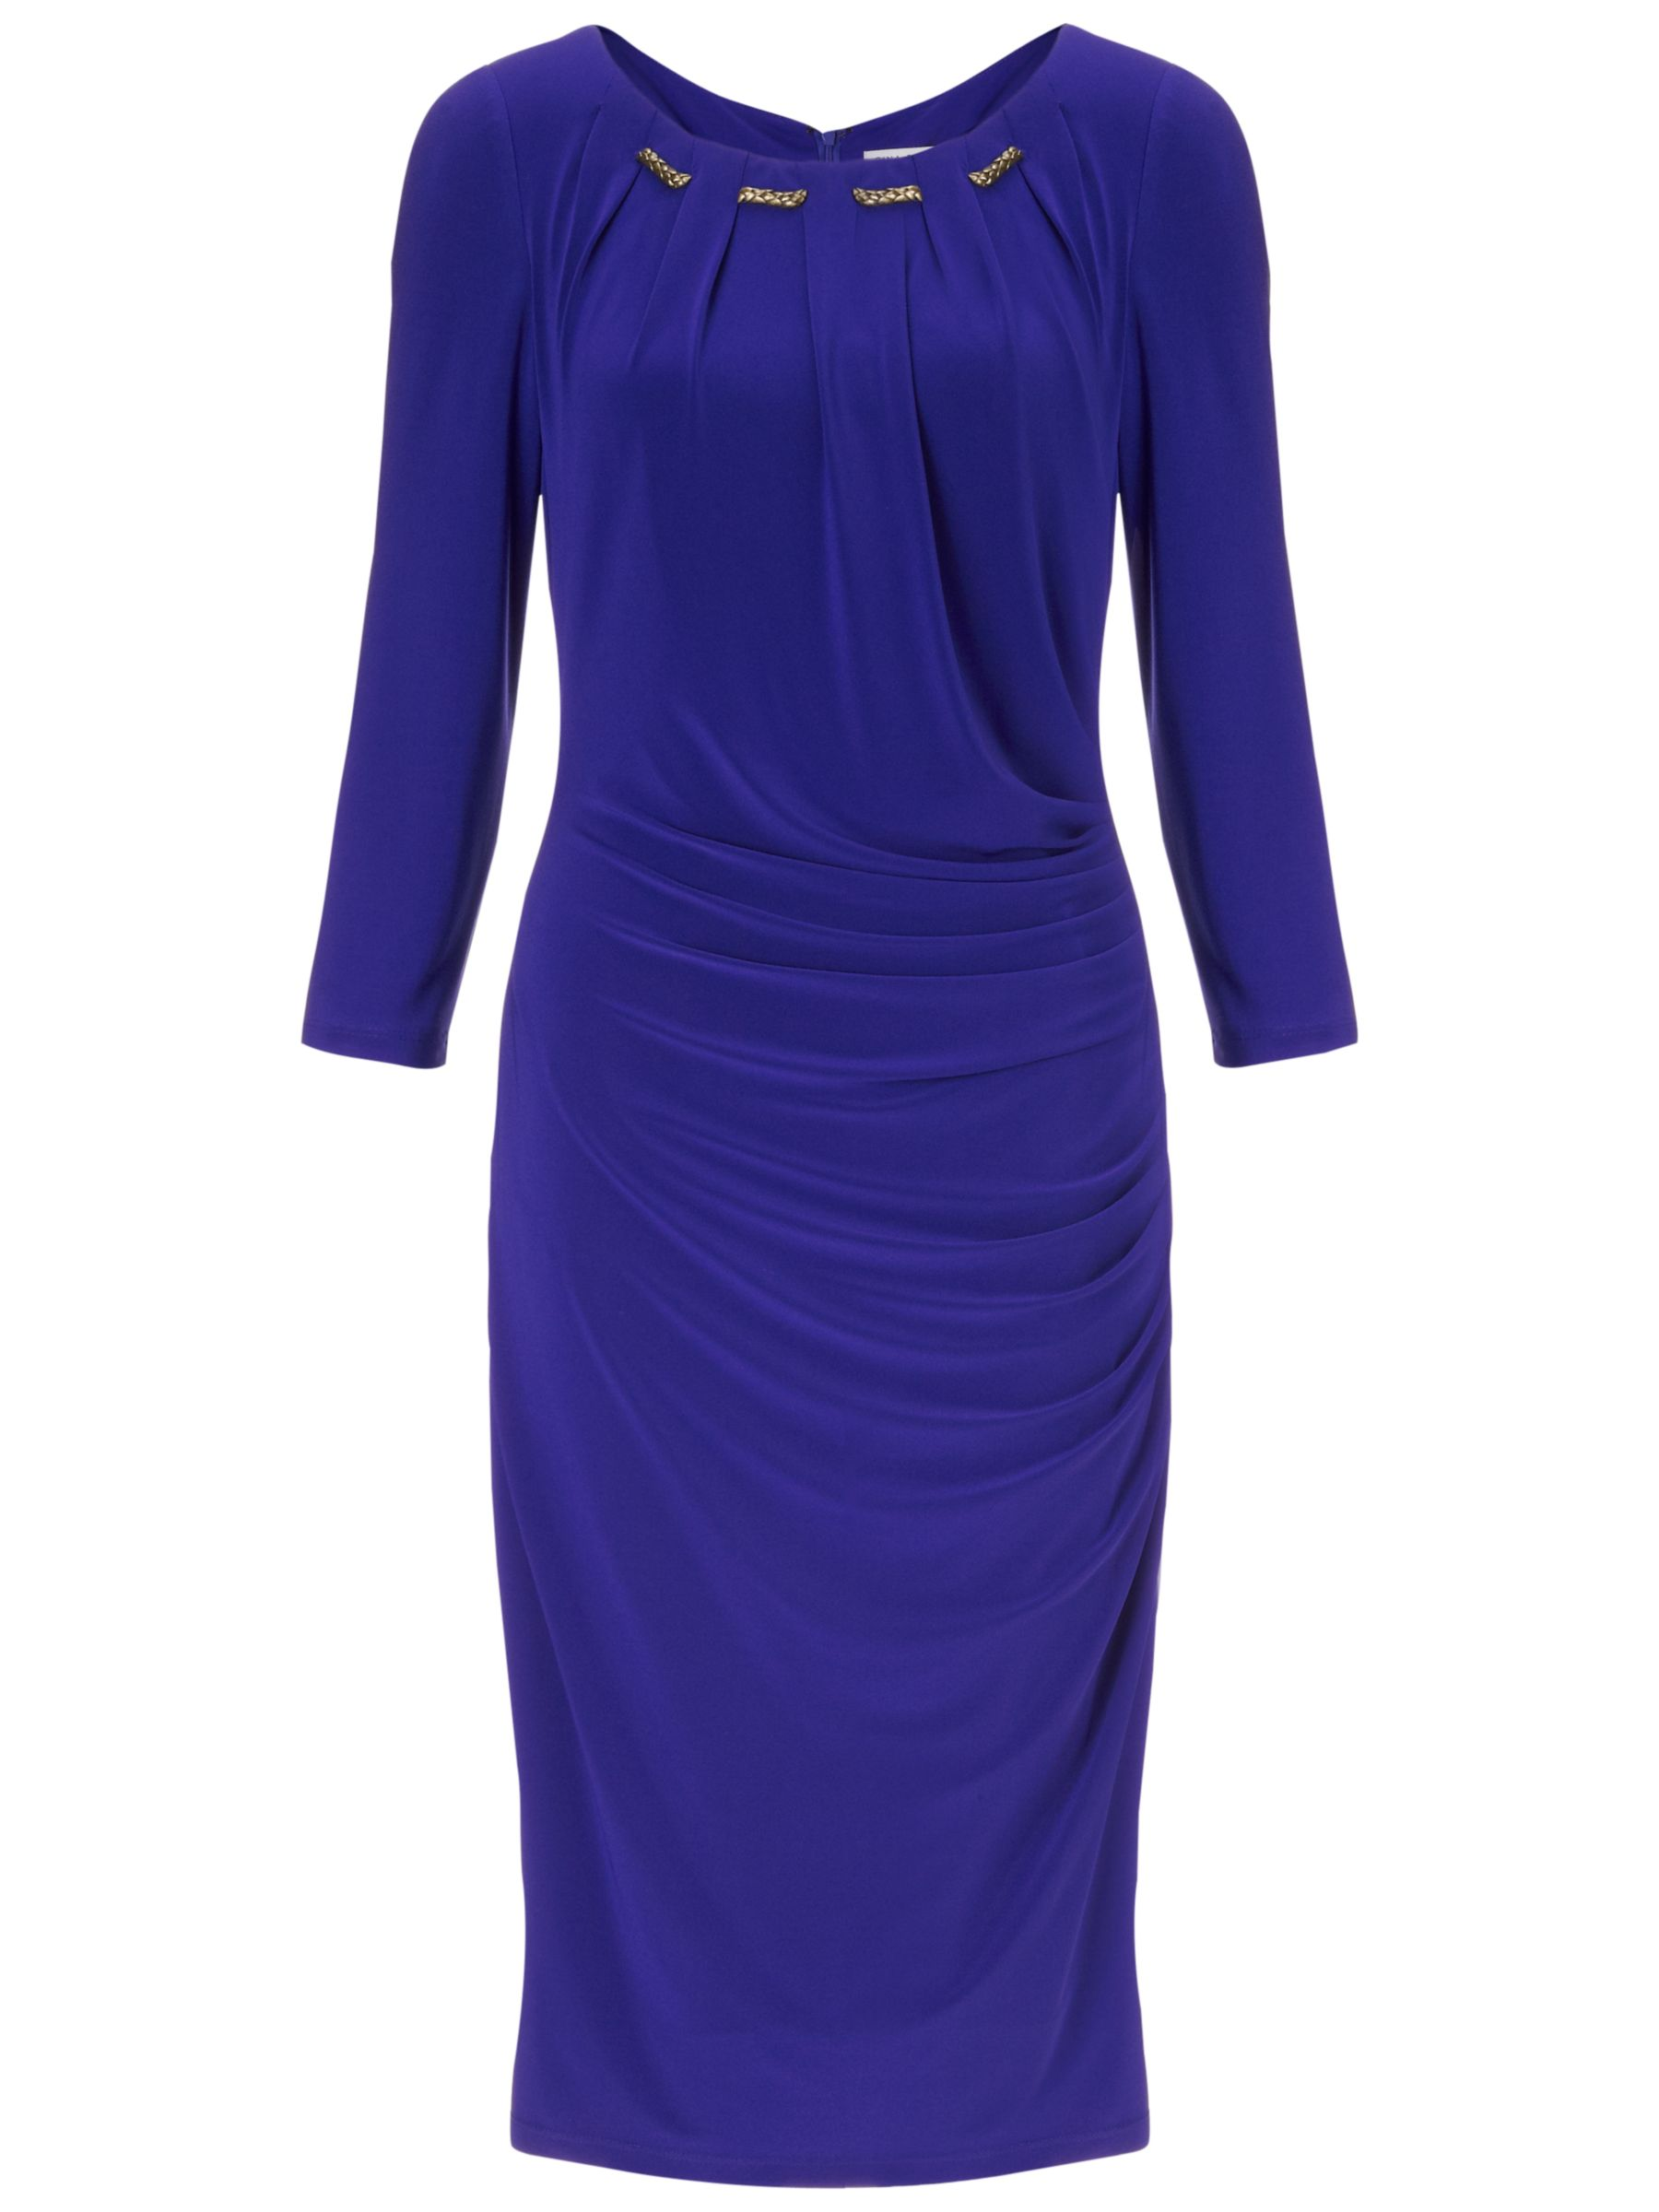 gina bacconi gold trim jersey dress sapphire, gina, bacconi, gold, trim, jersey, dress, sapphire, gina bacconi, 12|14|22|18|16, clearance, womenswear offers, womens dresses offers, women, inactive womenswear, new reductions, womens dresses, special offers, 1621144